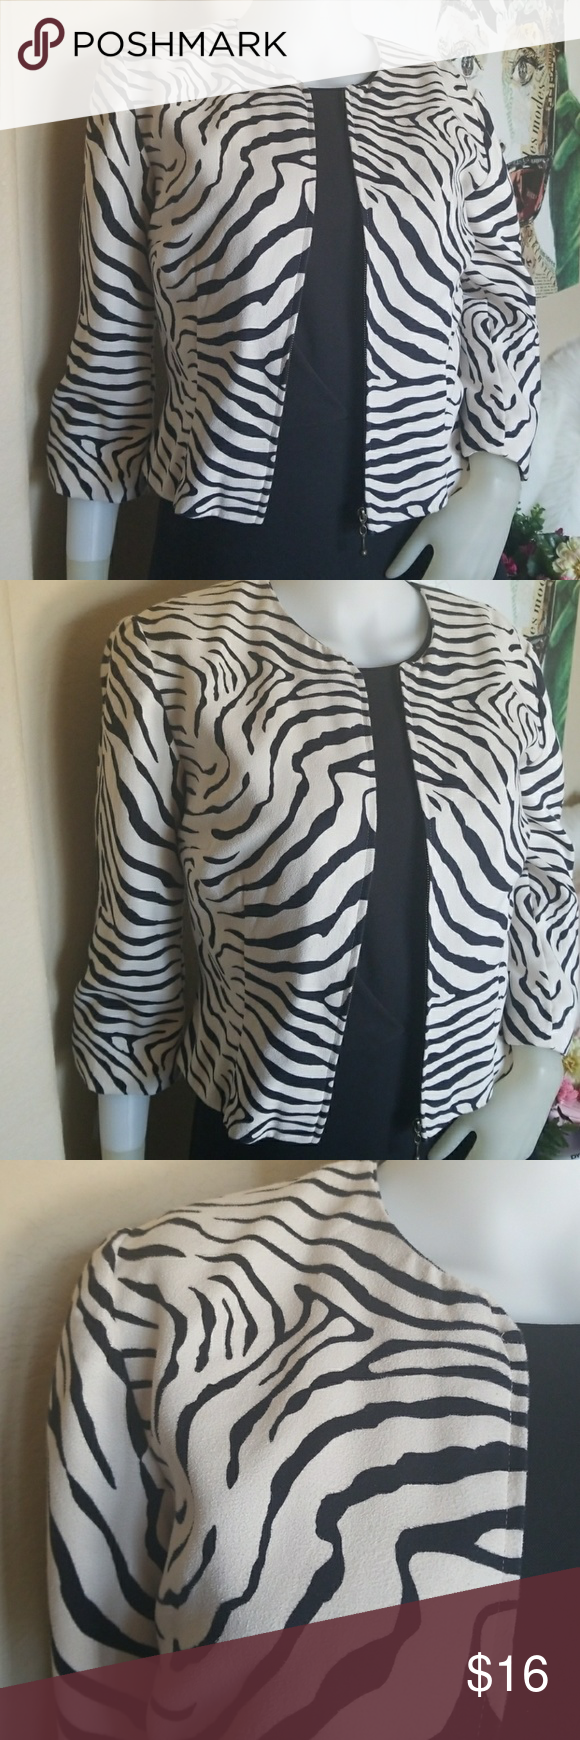 b035d127b8379 Donna Morgan Blazer Black White Print Size 8 Size 8 Zipper Closure Good  Used Condition Donna Morgan Jackets & Coats Blazers